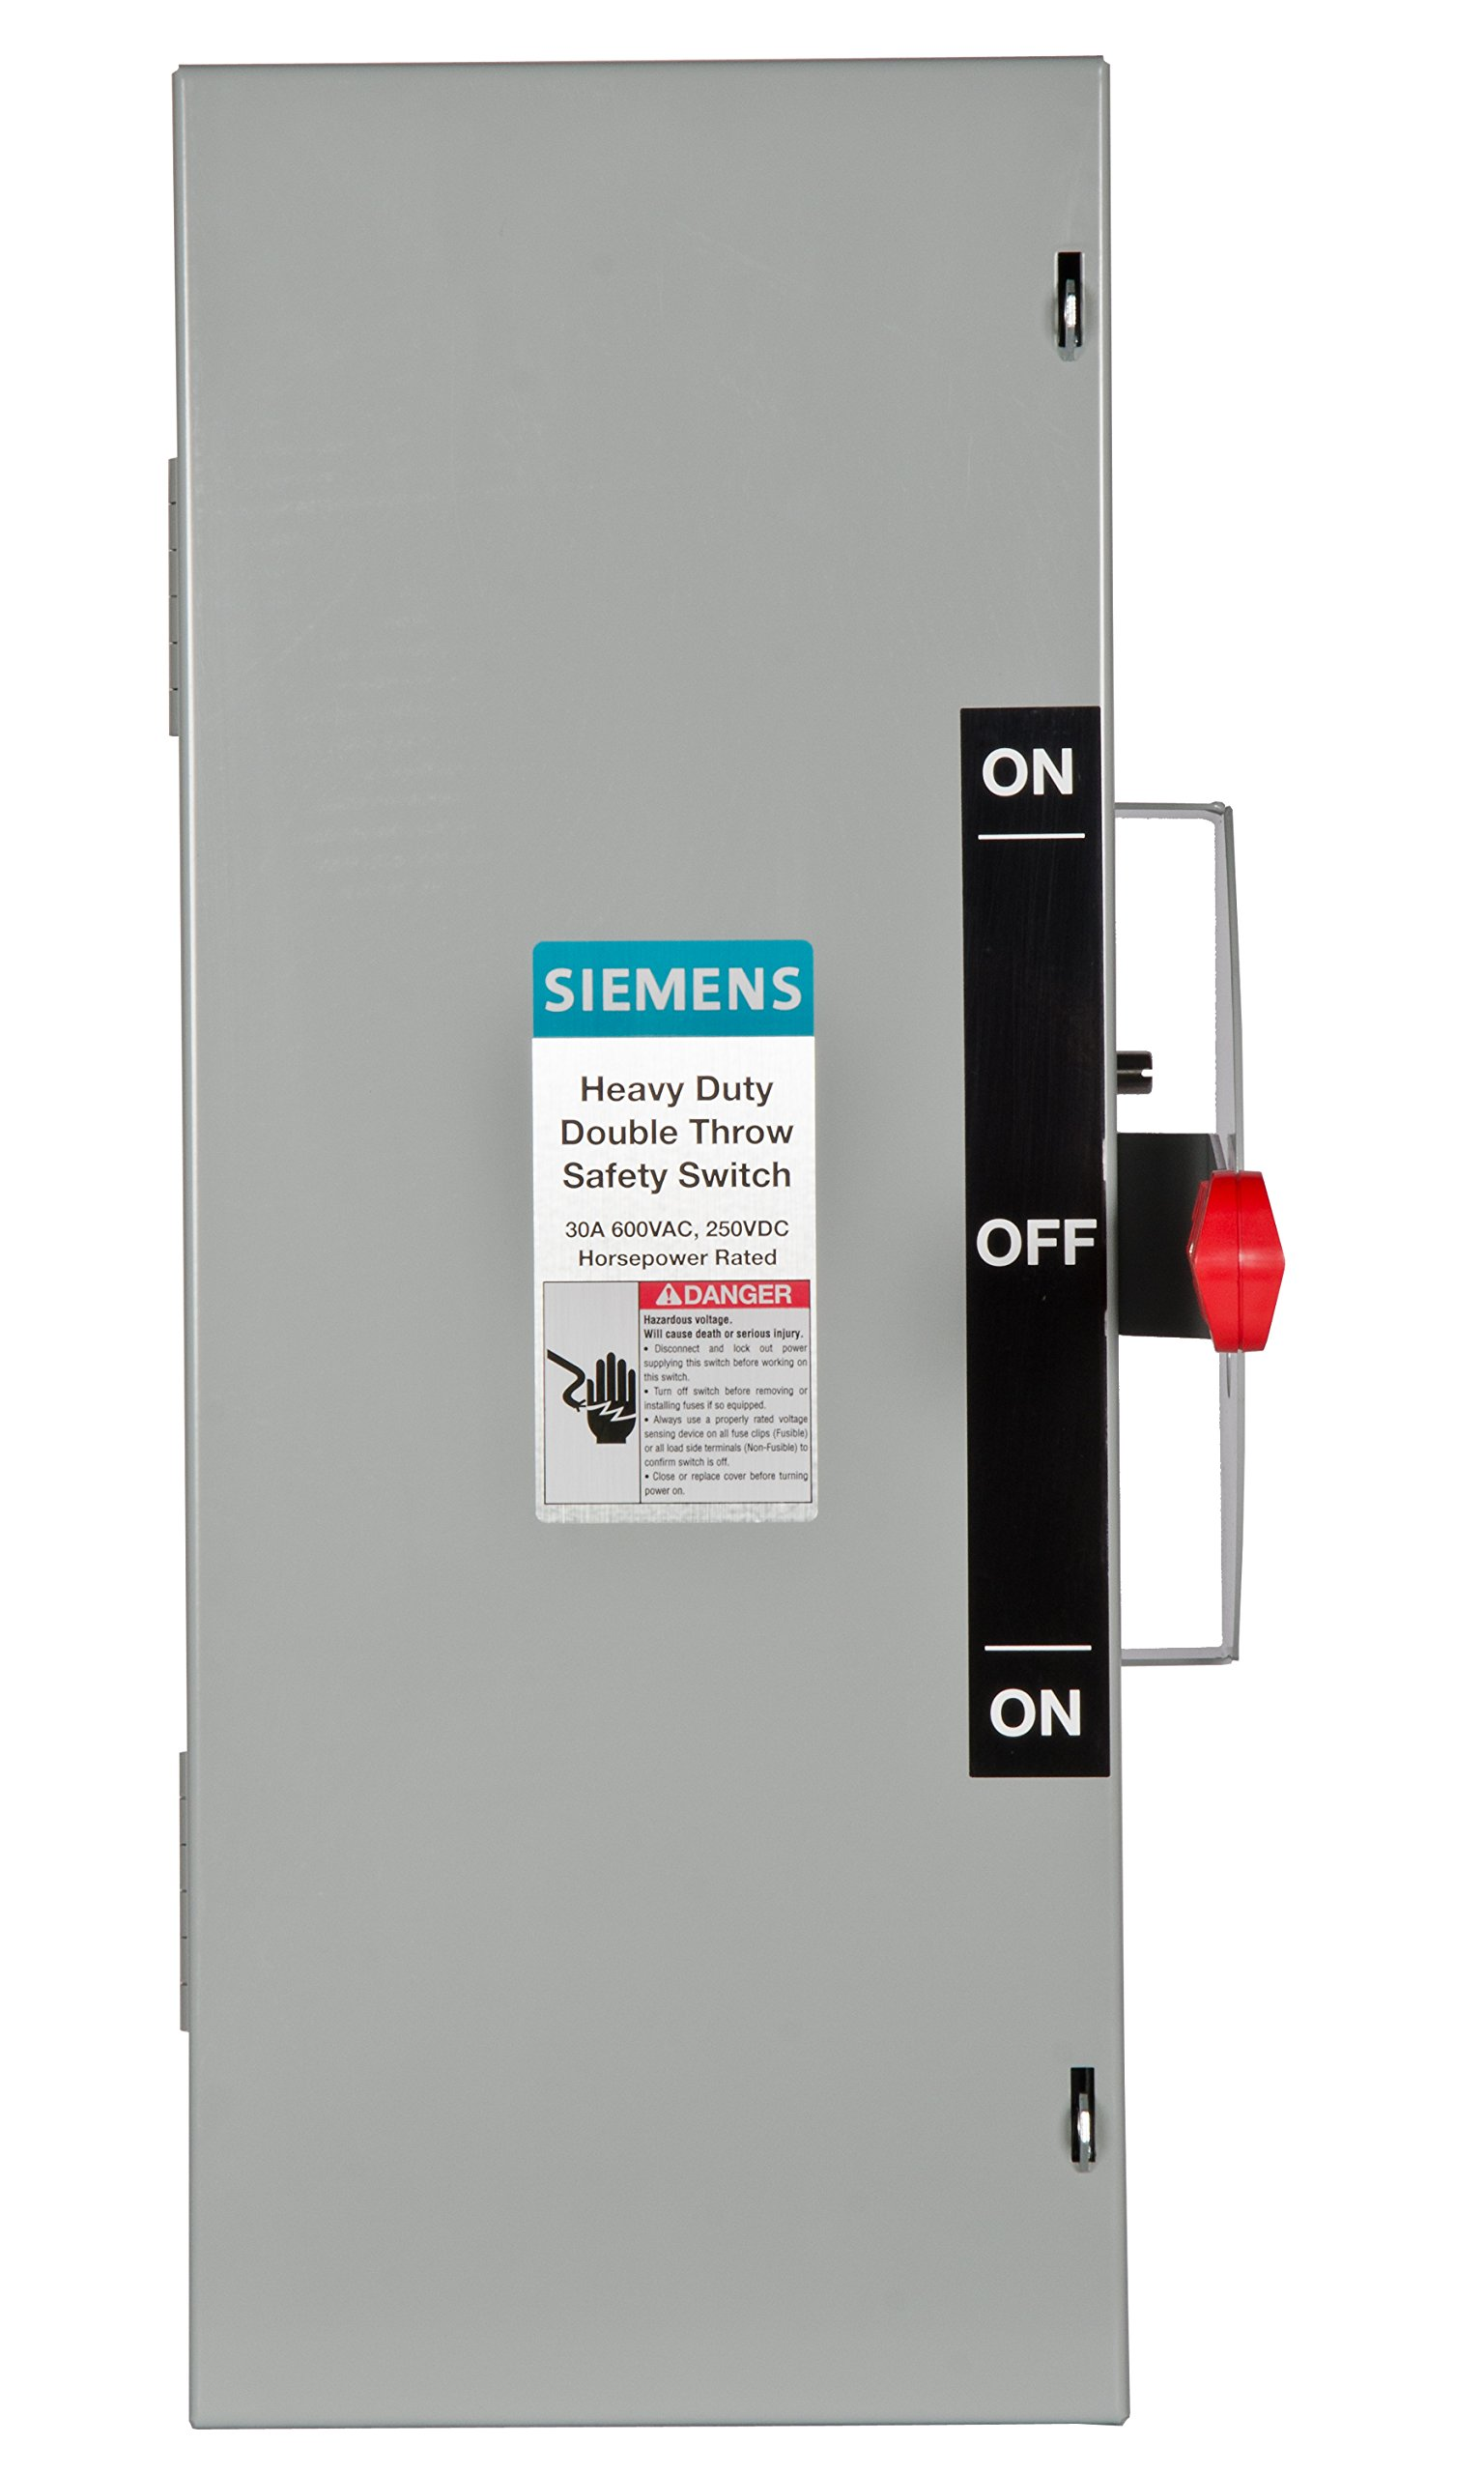 Siemens DTNF361 30-Amp 3 Pole 600-volt 3 Wire Non-Fused Double Throw Safety Switches